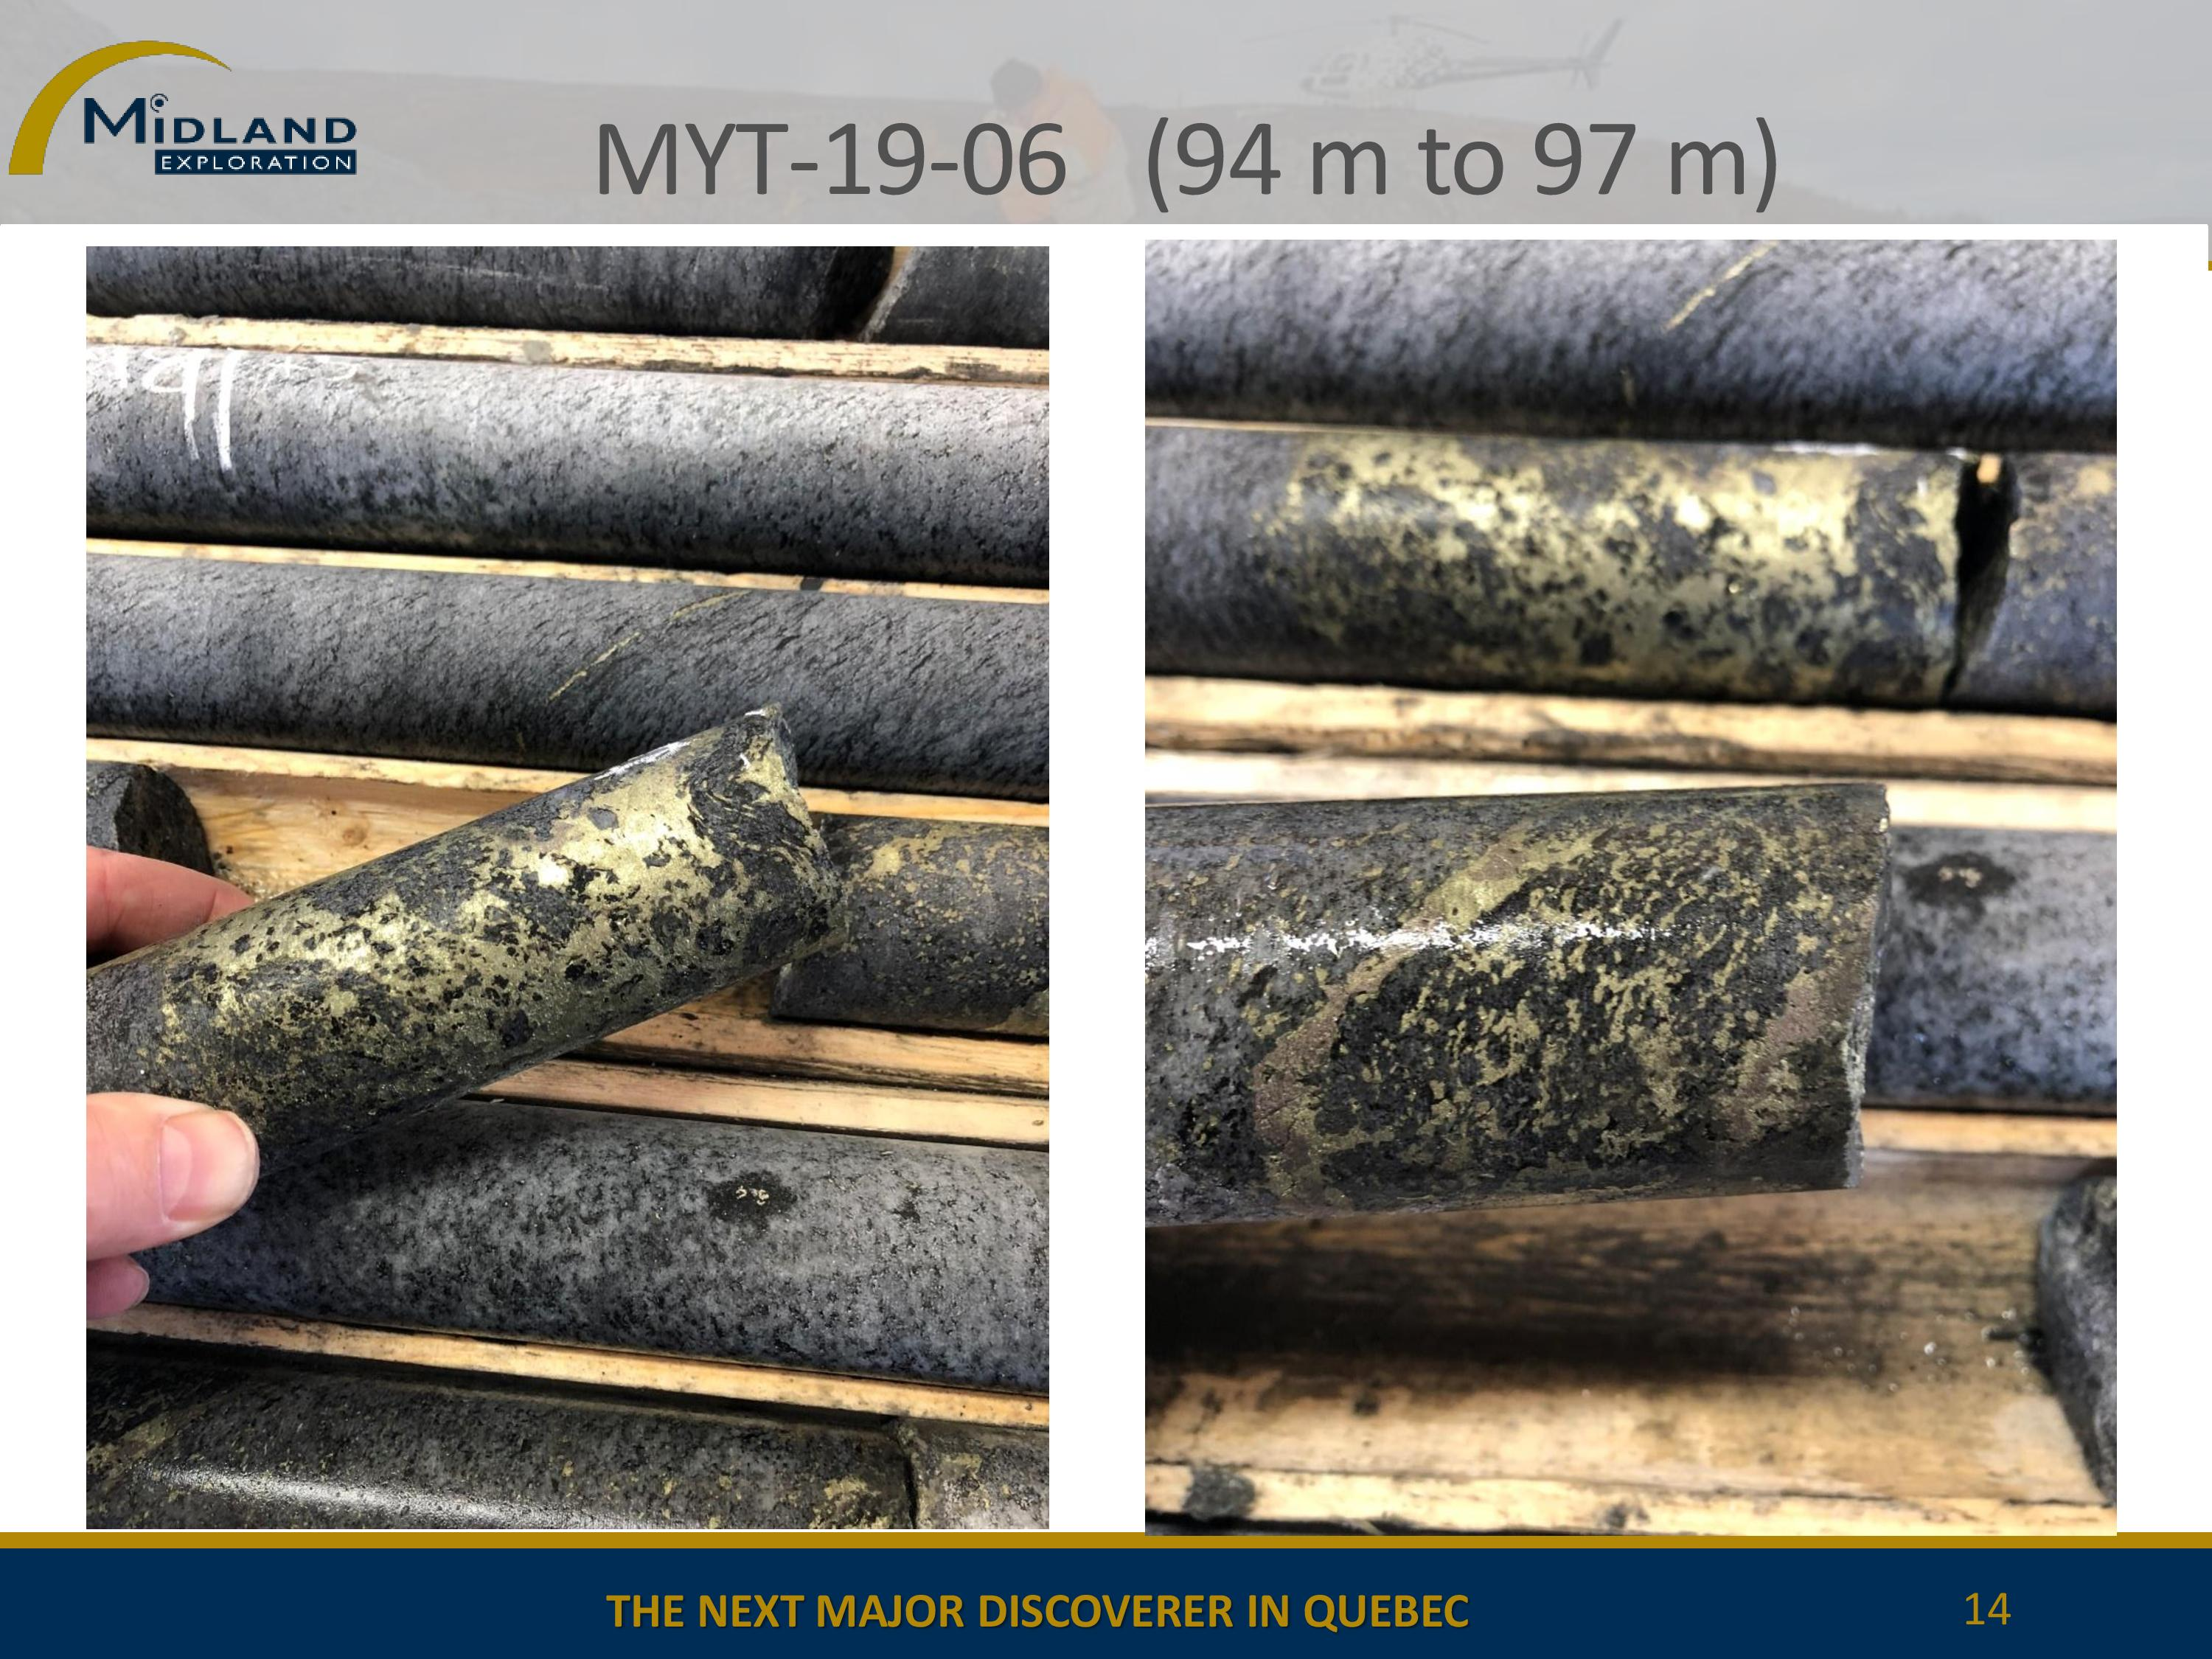 Copper mineralization in MYT-19-06